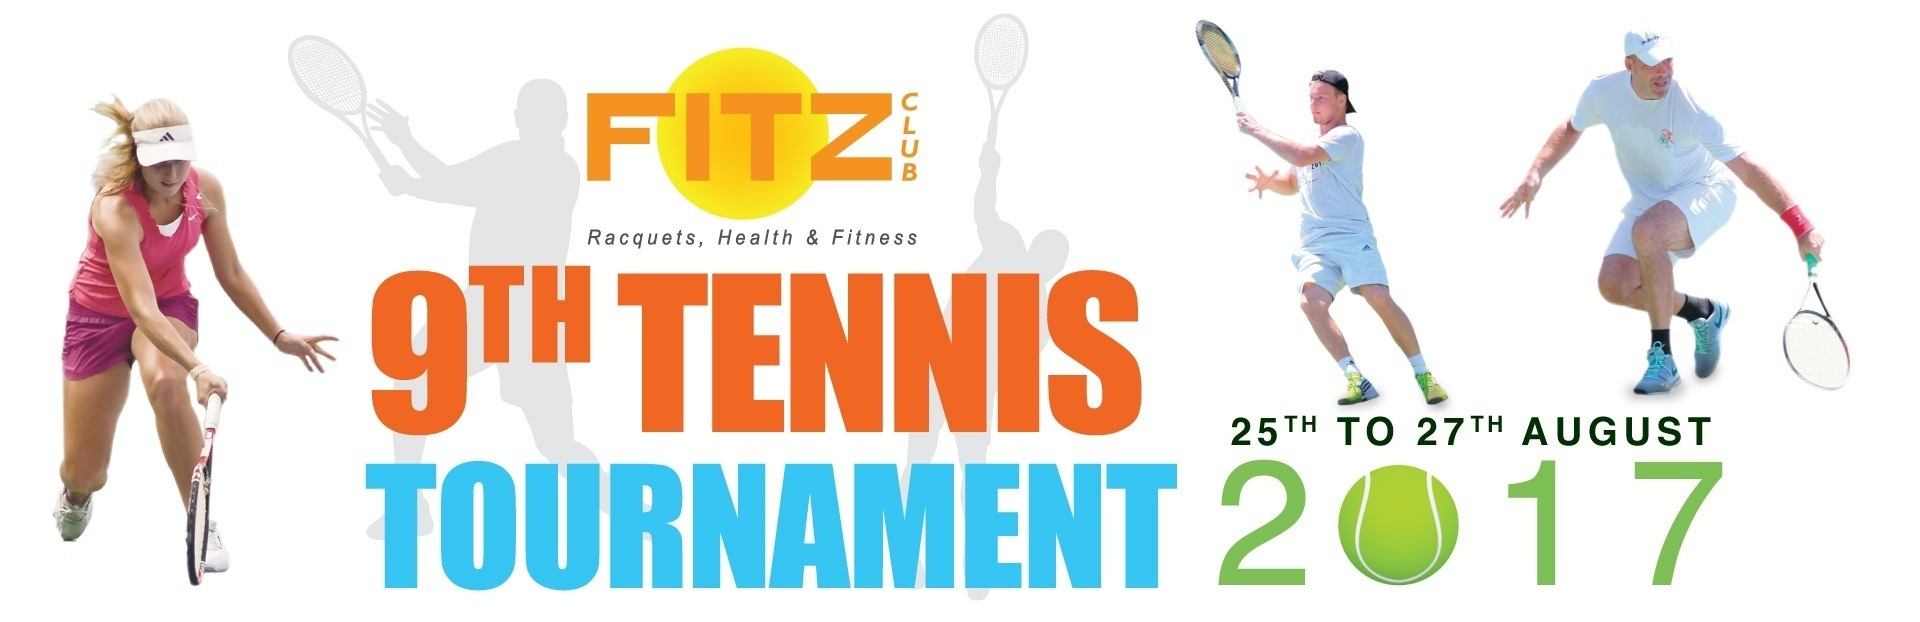 9th Fitz Club Tennis tournament on 25th - 27th August 2017